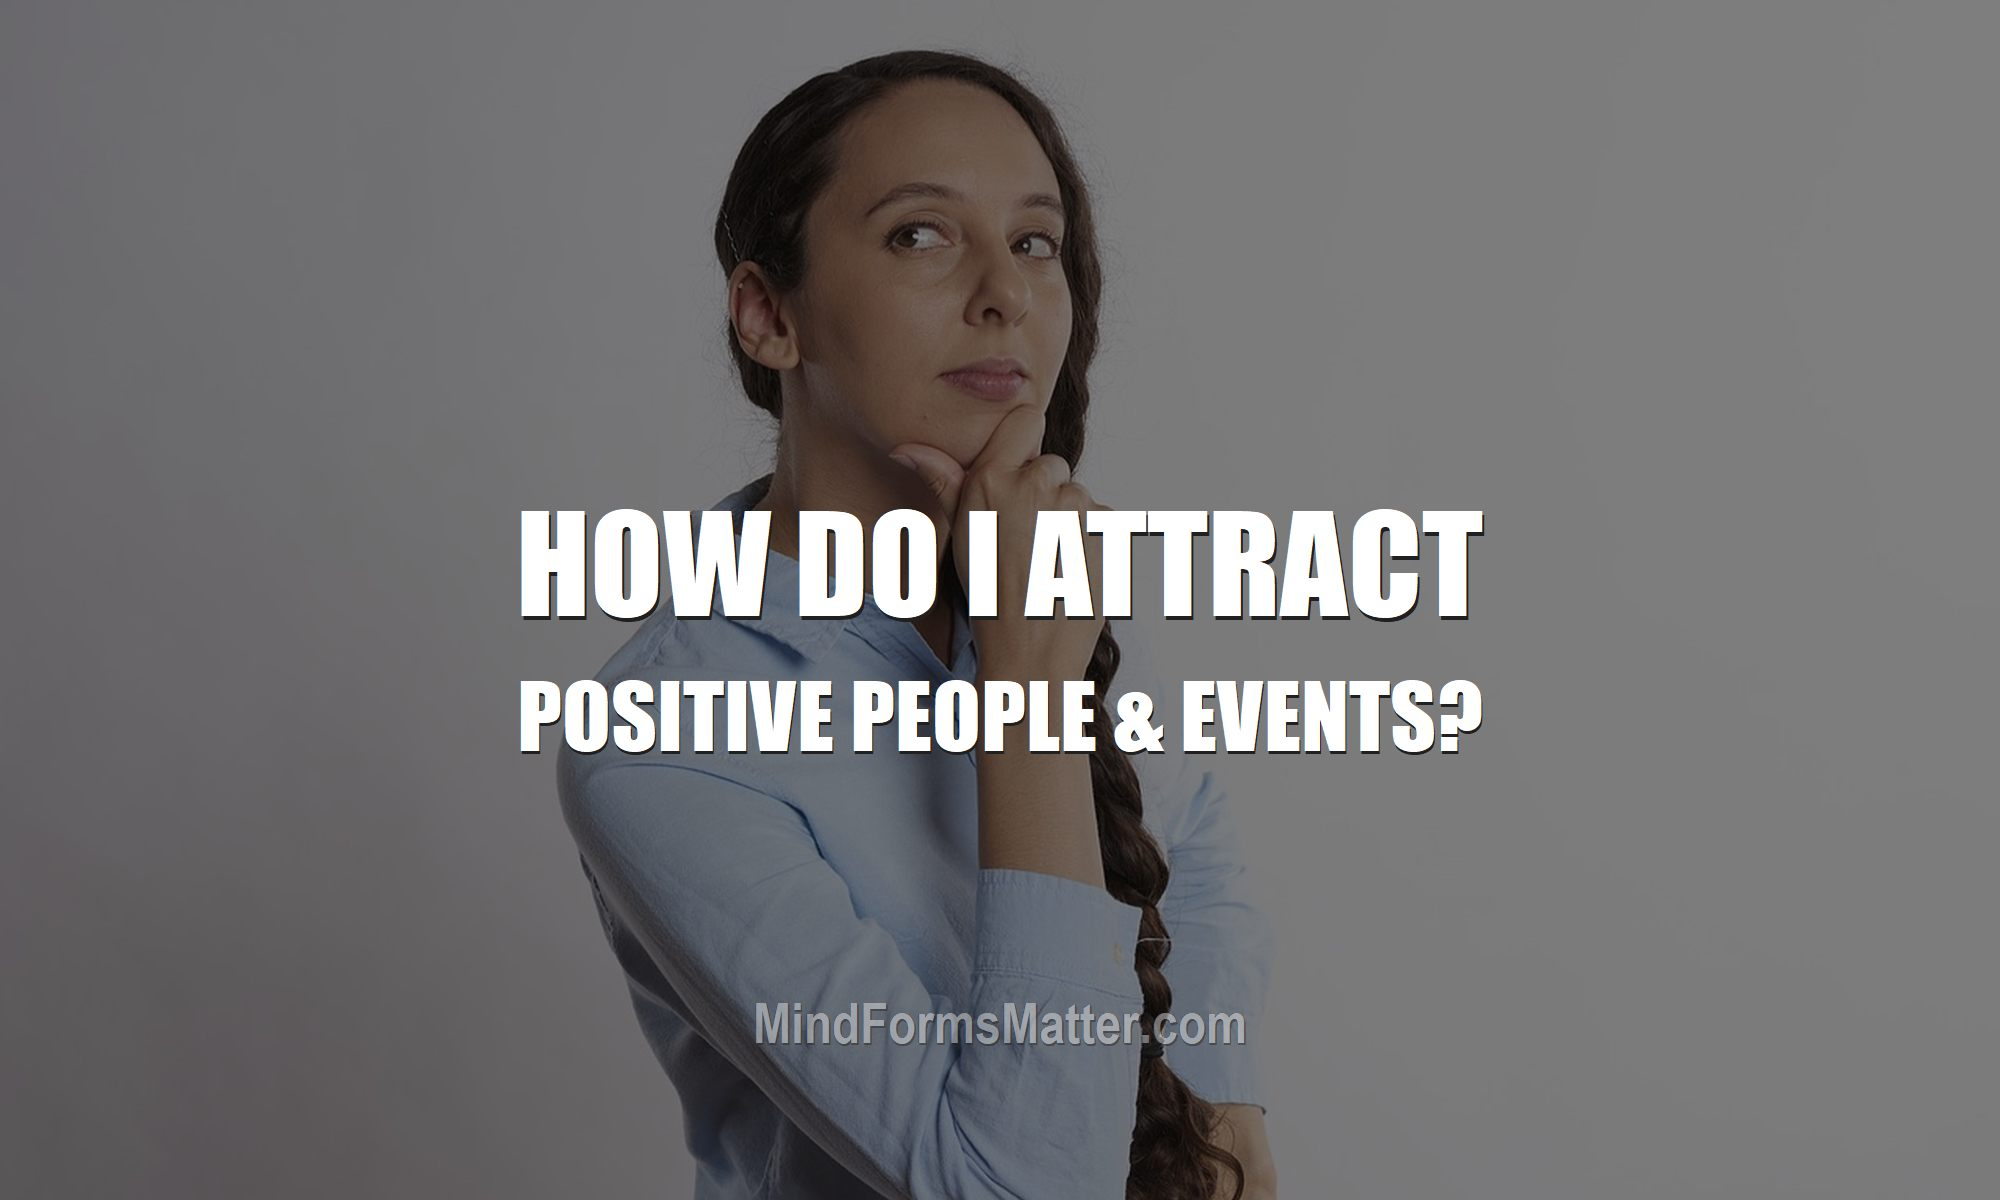 how-do-i-use-my-mind-to-attract-positive-people-events-how-to-consciously-create-your-own-reality-feature